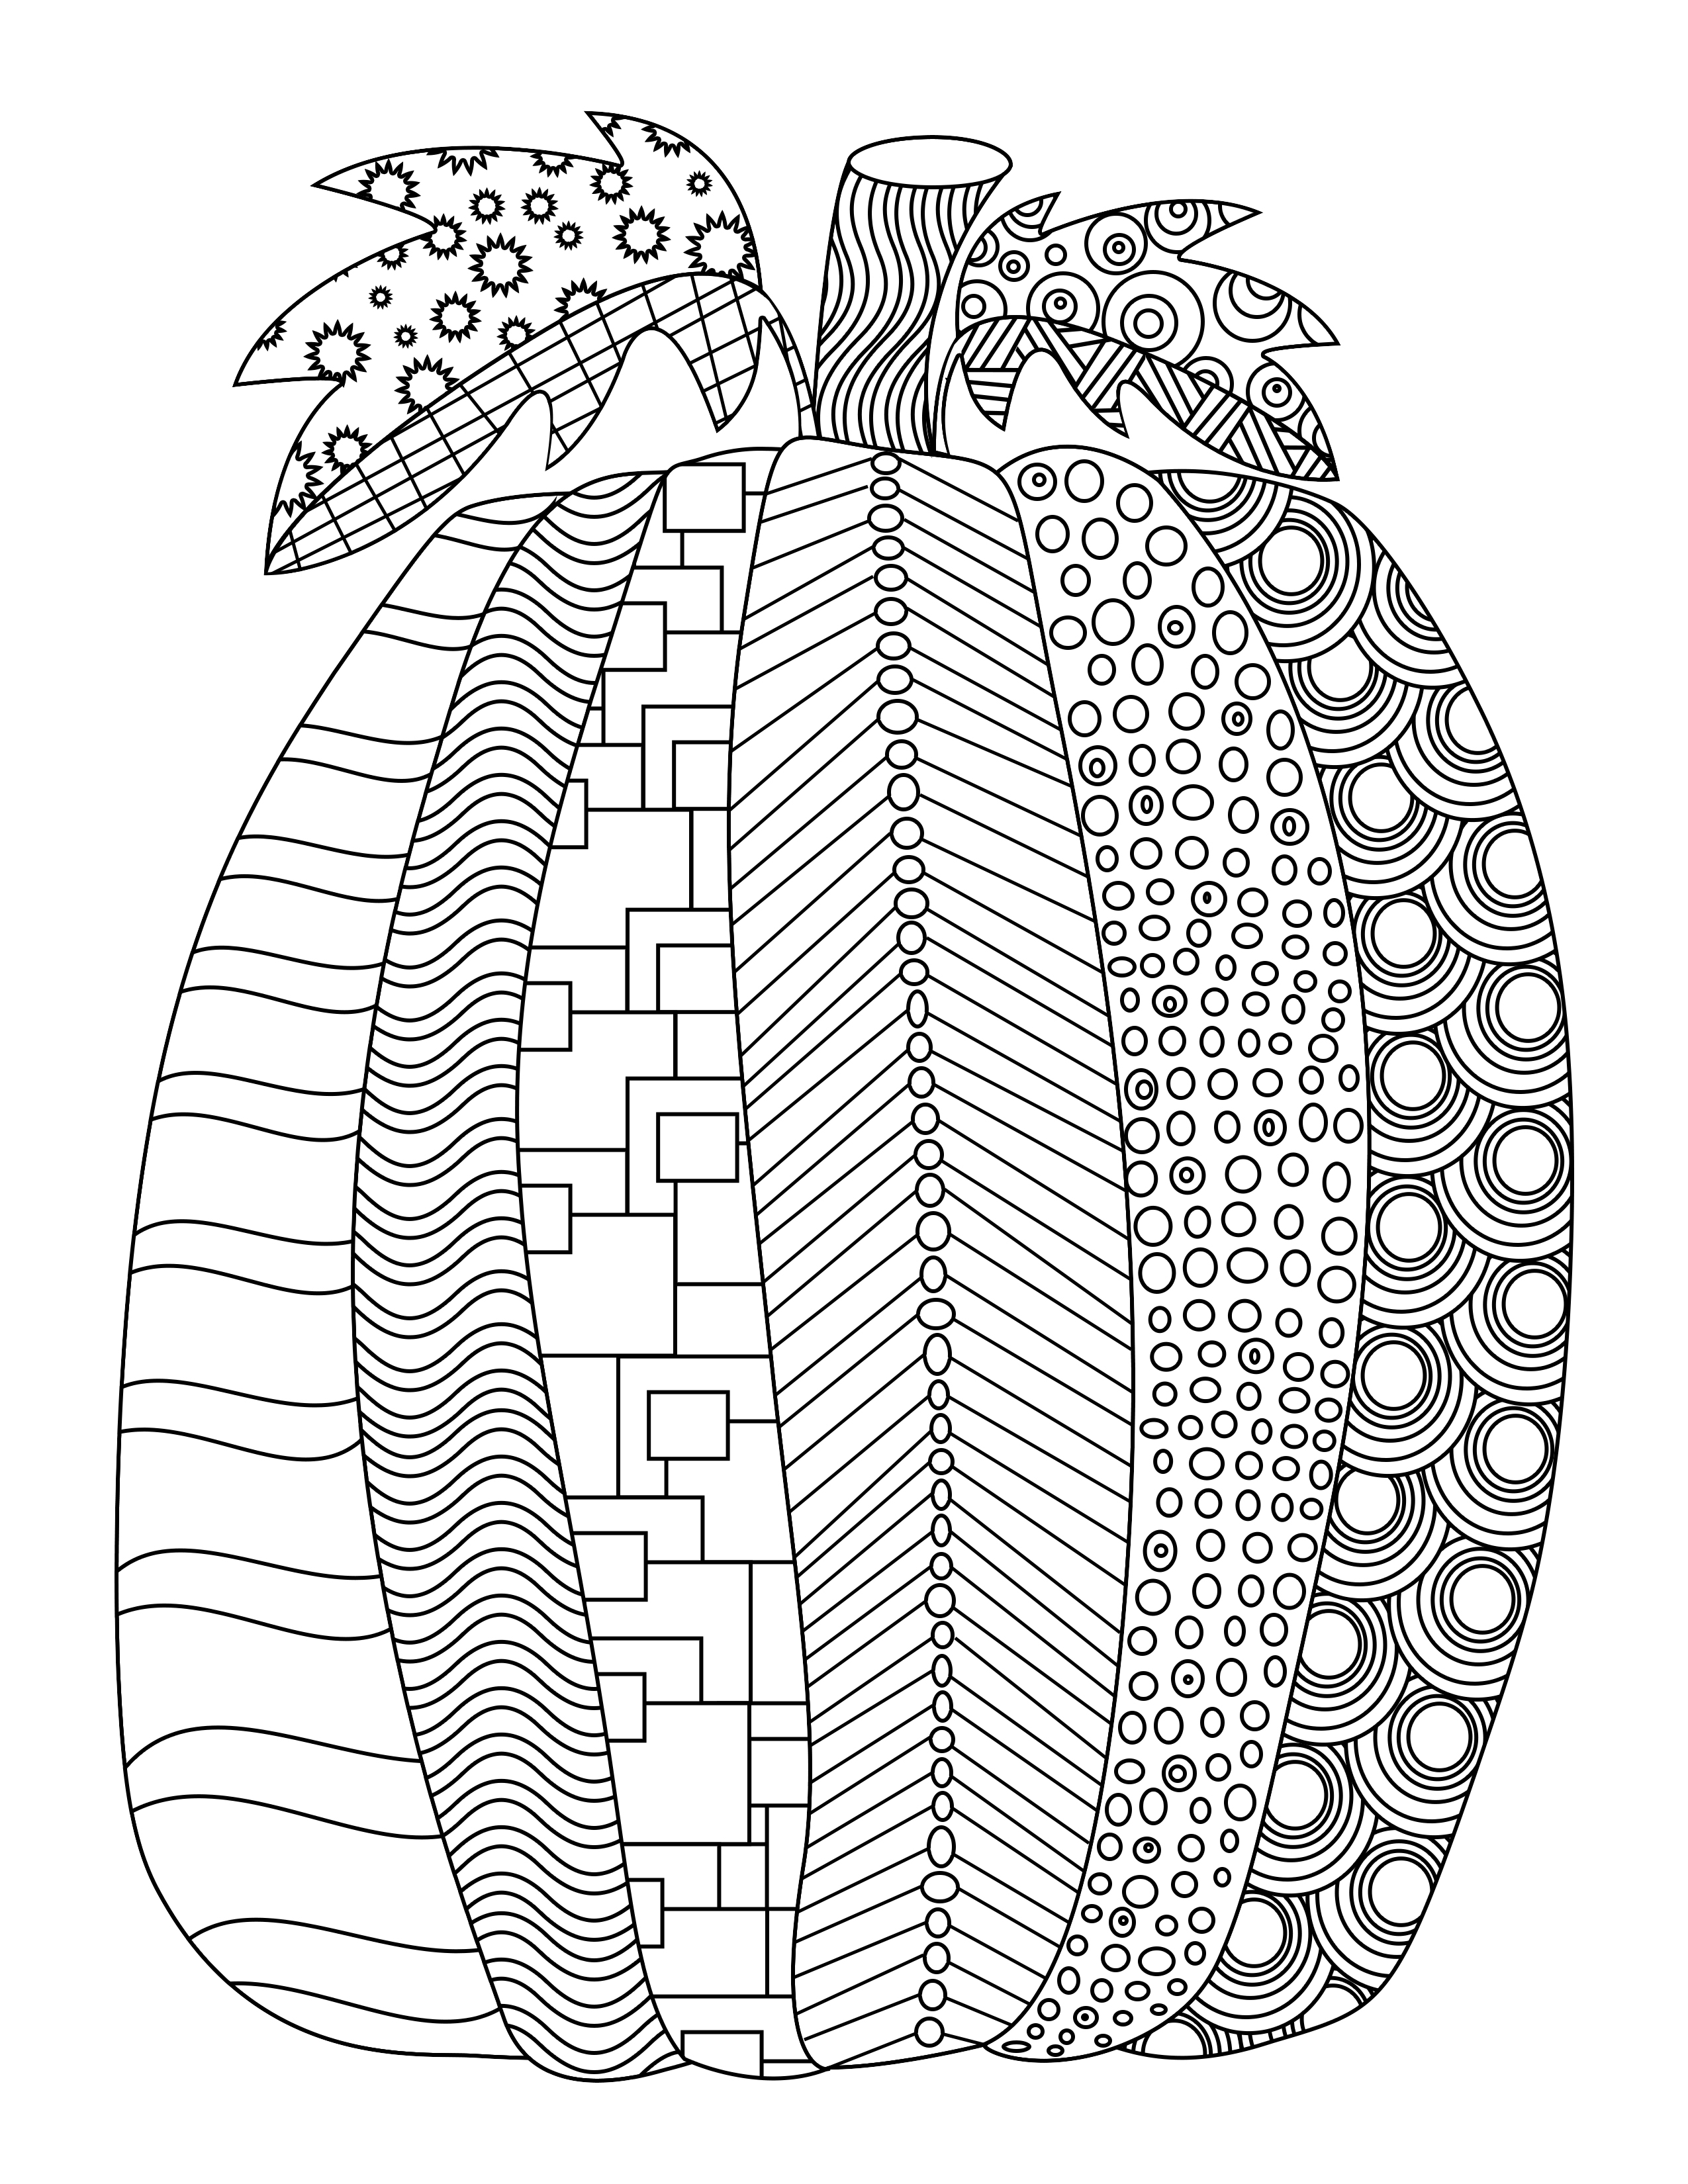 Adult Coloring Pages Fall At Getdrawings